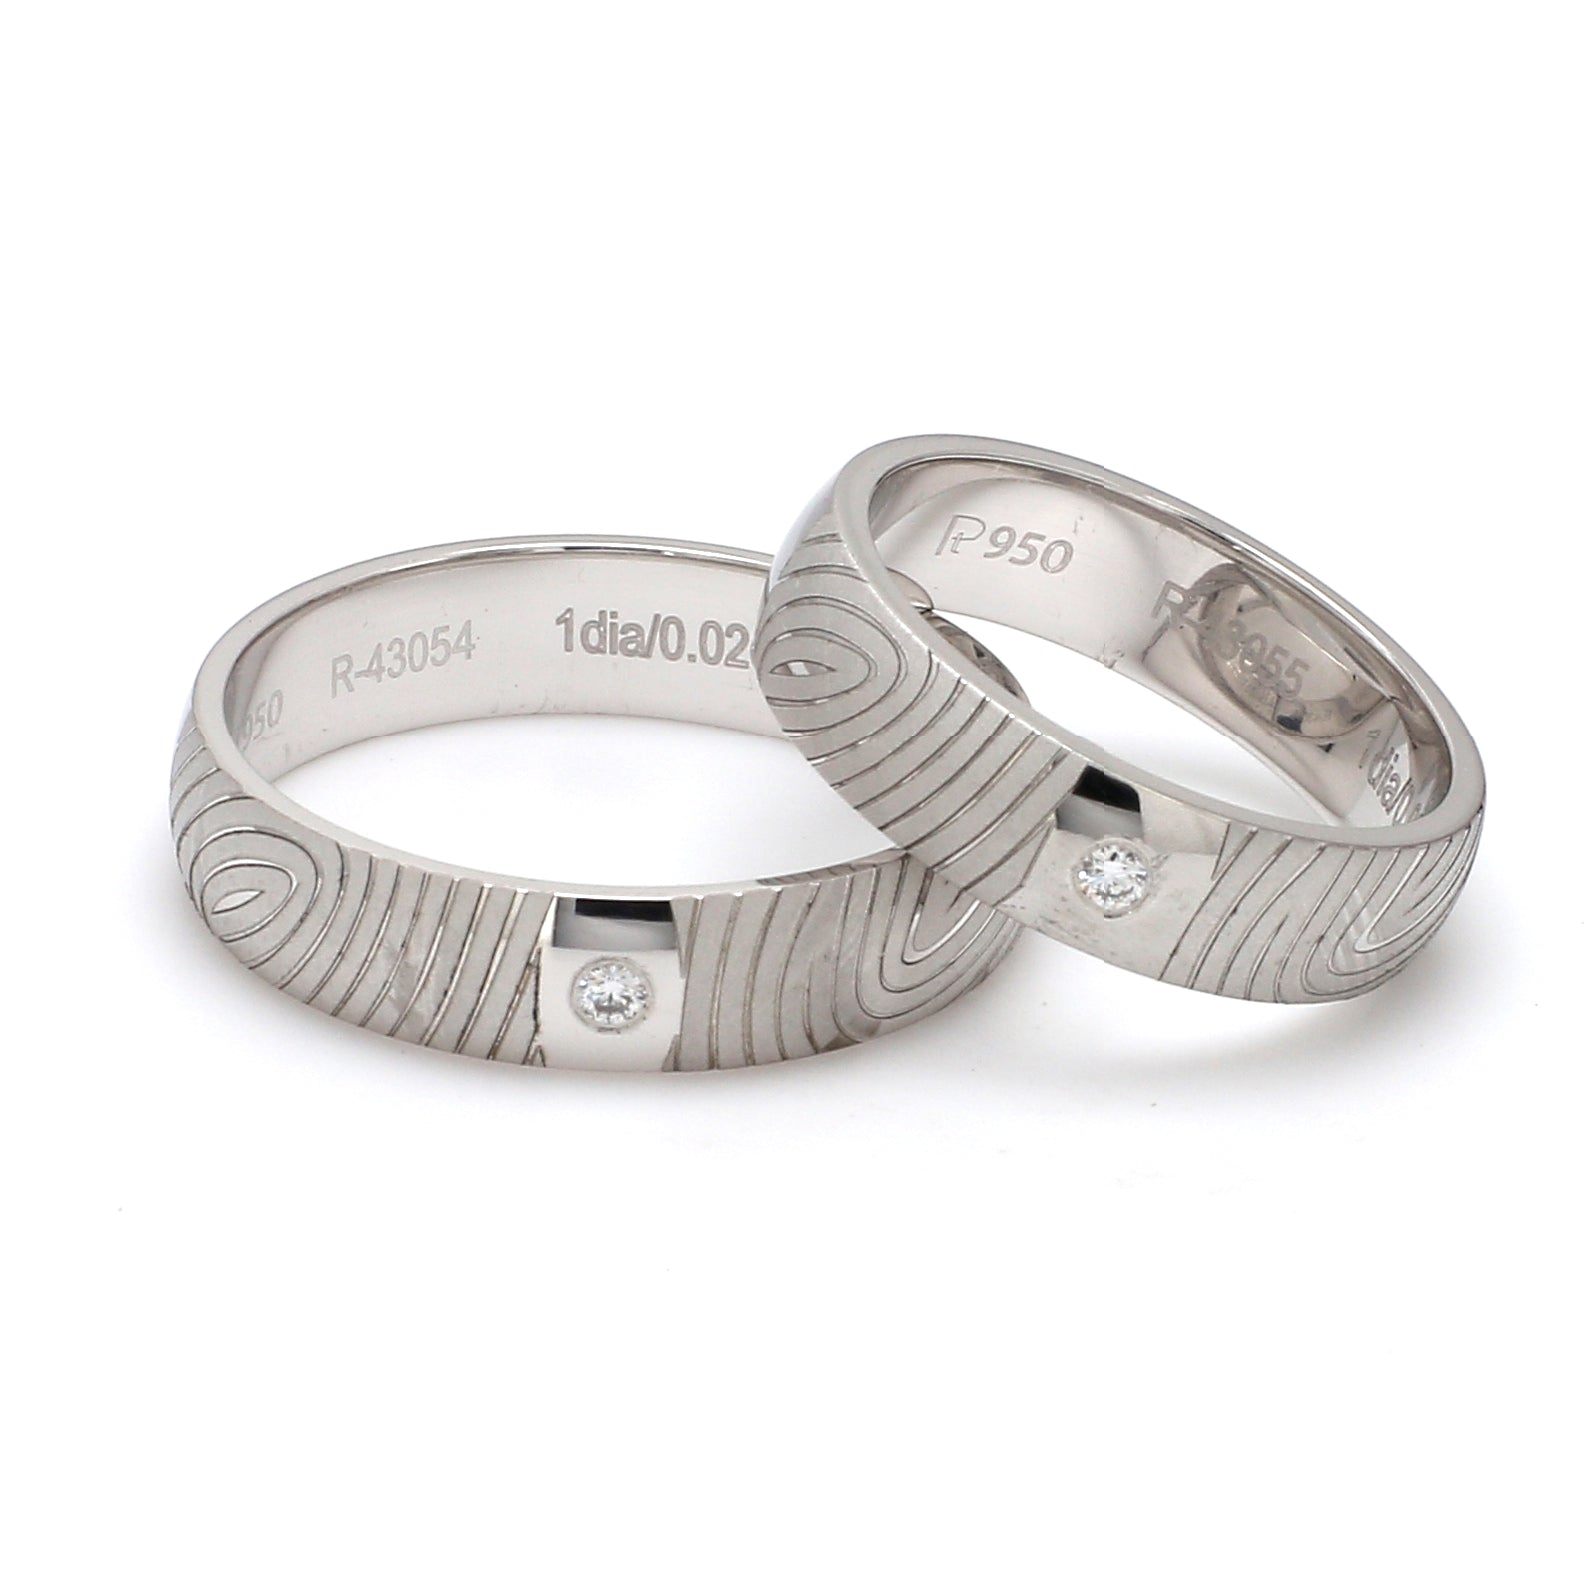 Front View of Customized Fingerprint Engraved Platinum Rings with Diamonds for Couples - Copy